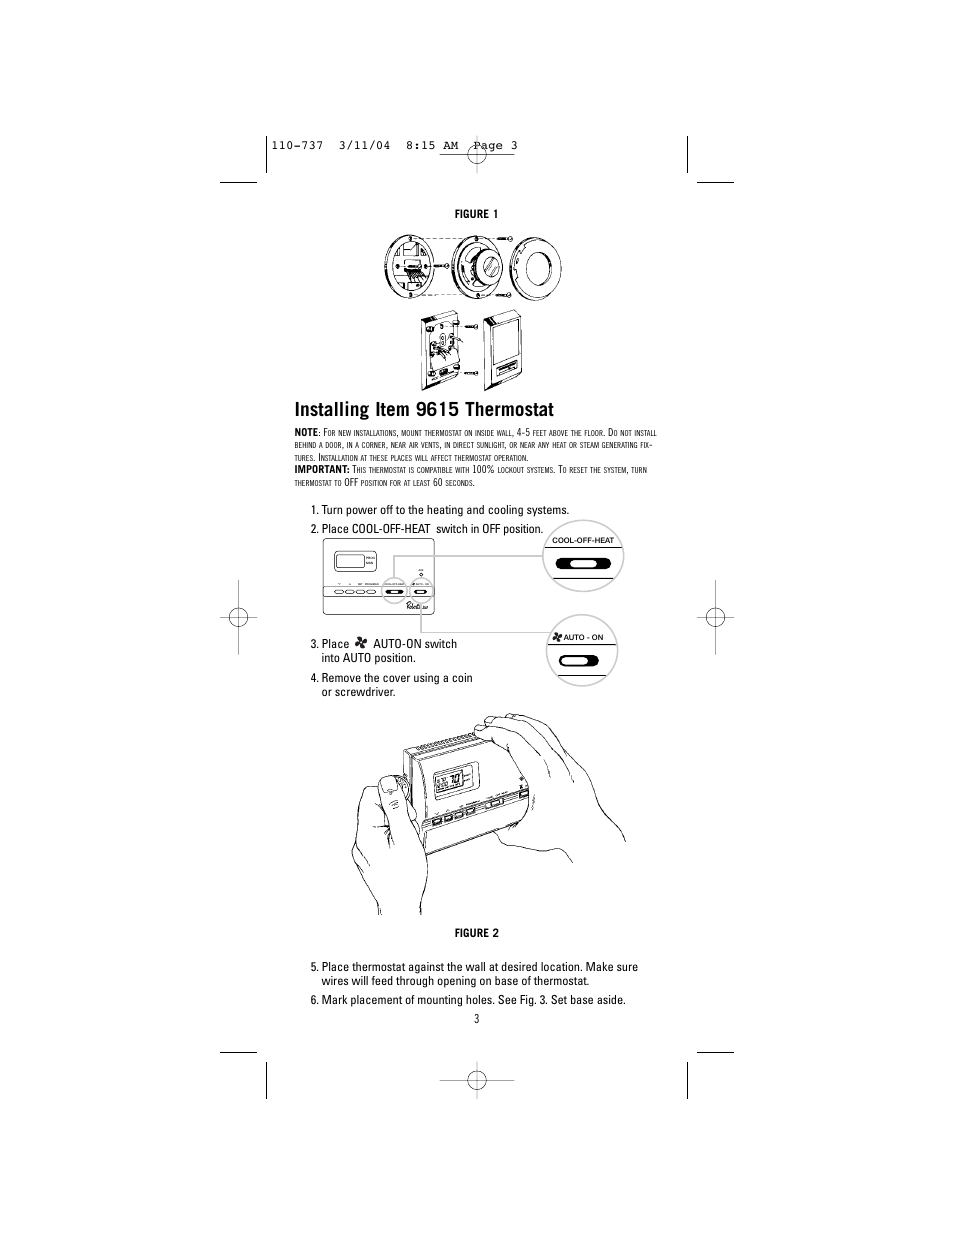 hight resolution of installing item 9615 thermostat robertshaw 9615 user manual page robertshaw thermostat 9520 manual robertshaw 9615 thermostat wiring diagram